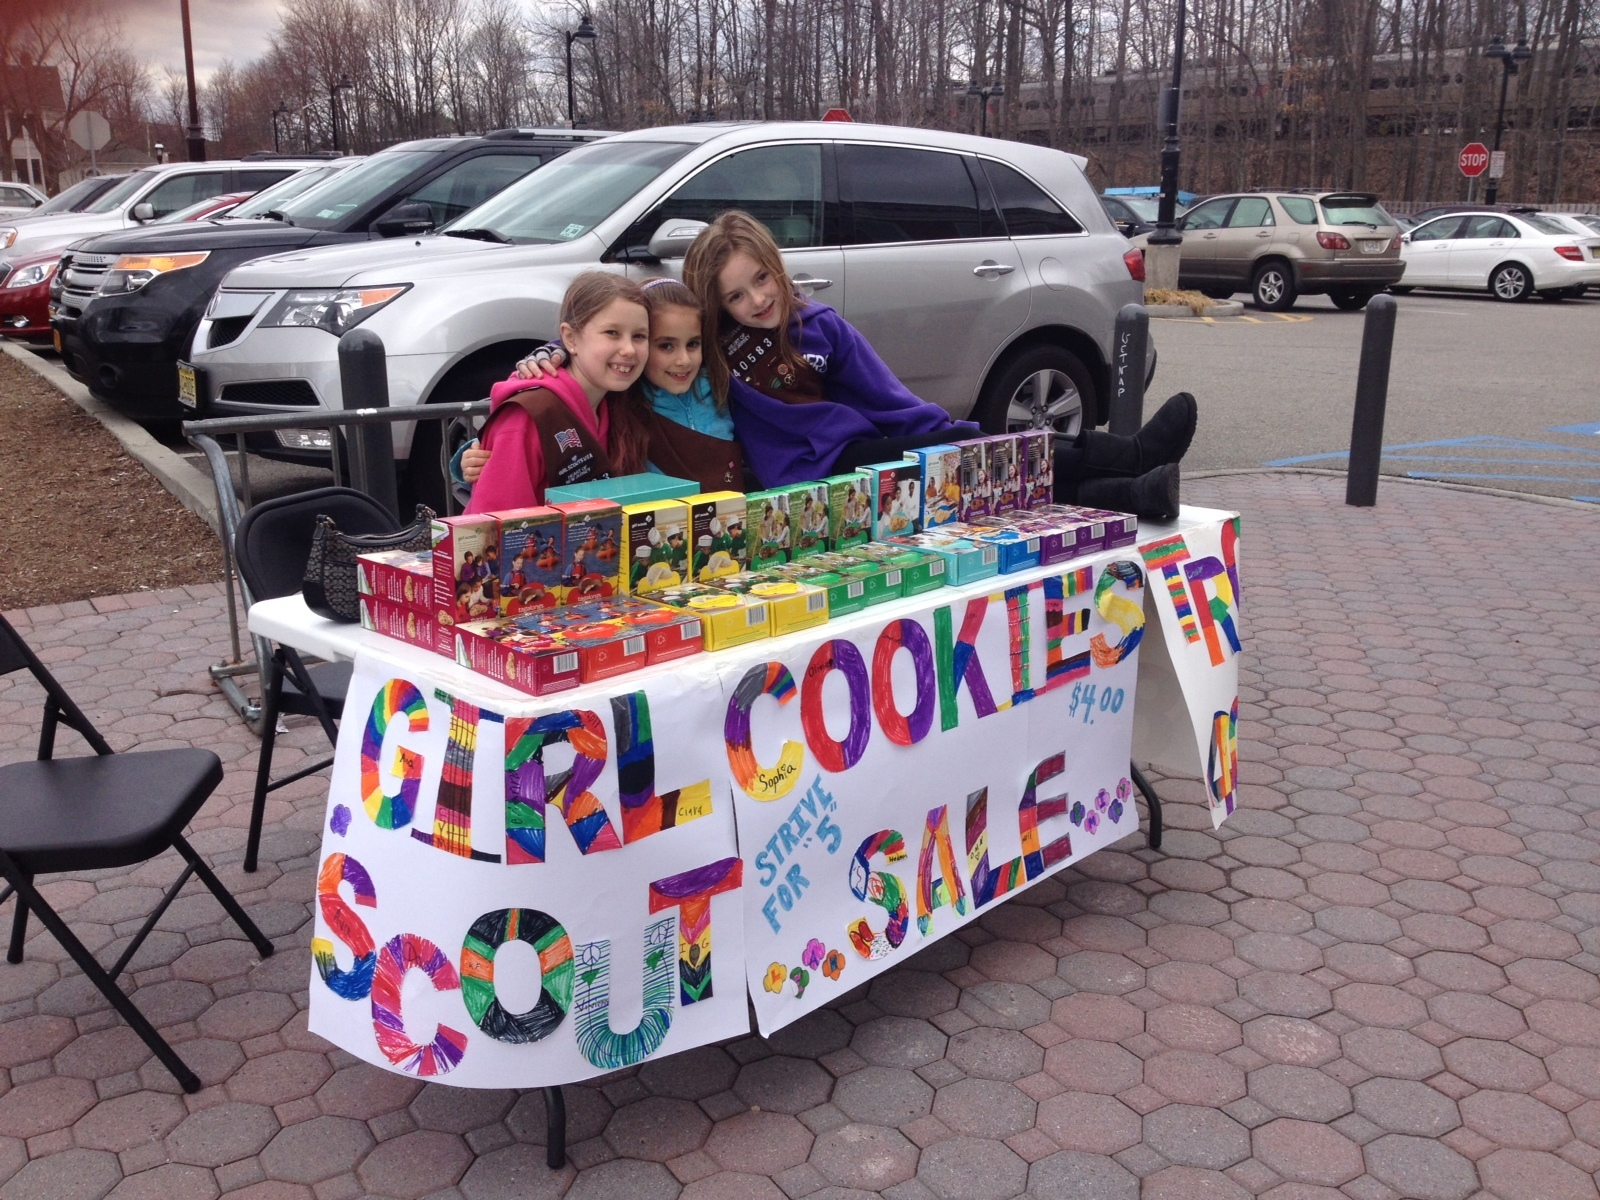 a2a25e909044aa0be844_Troop_40583_2014_Cookie_Sale_Booth.jpg